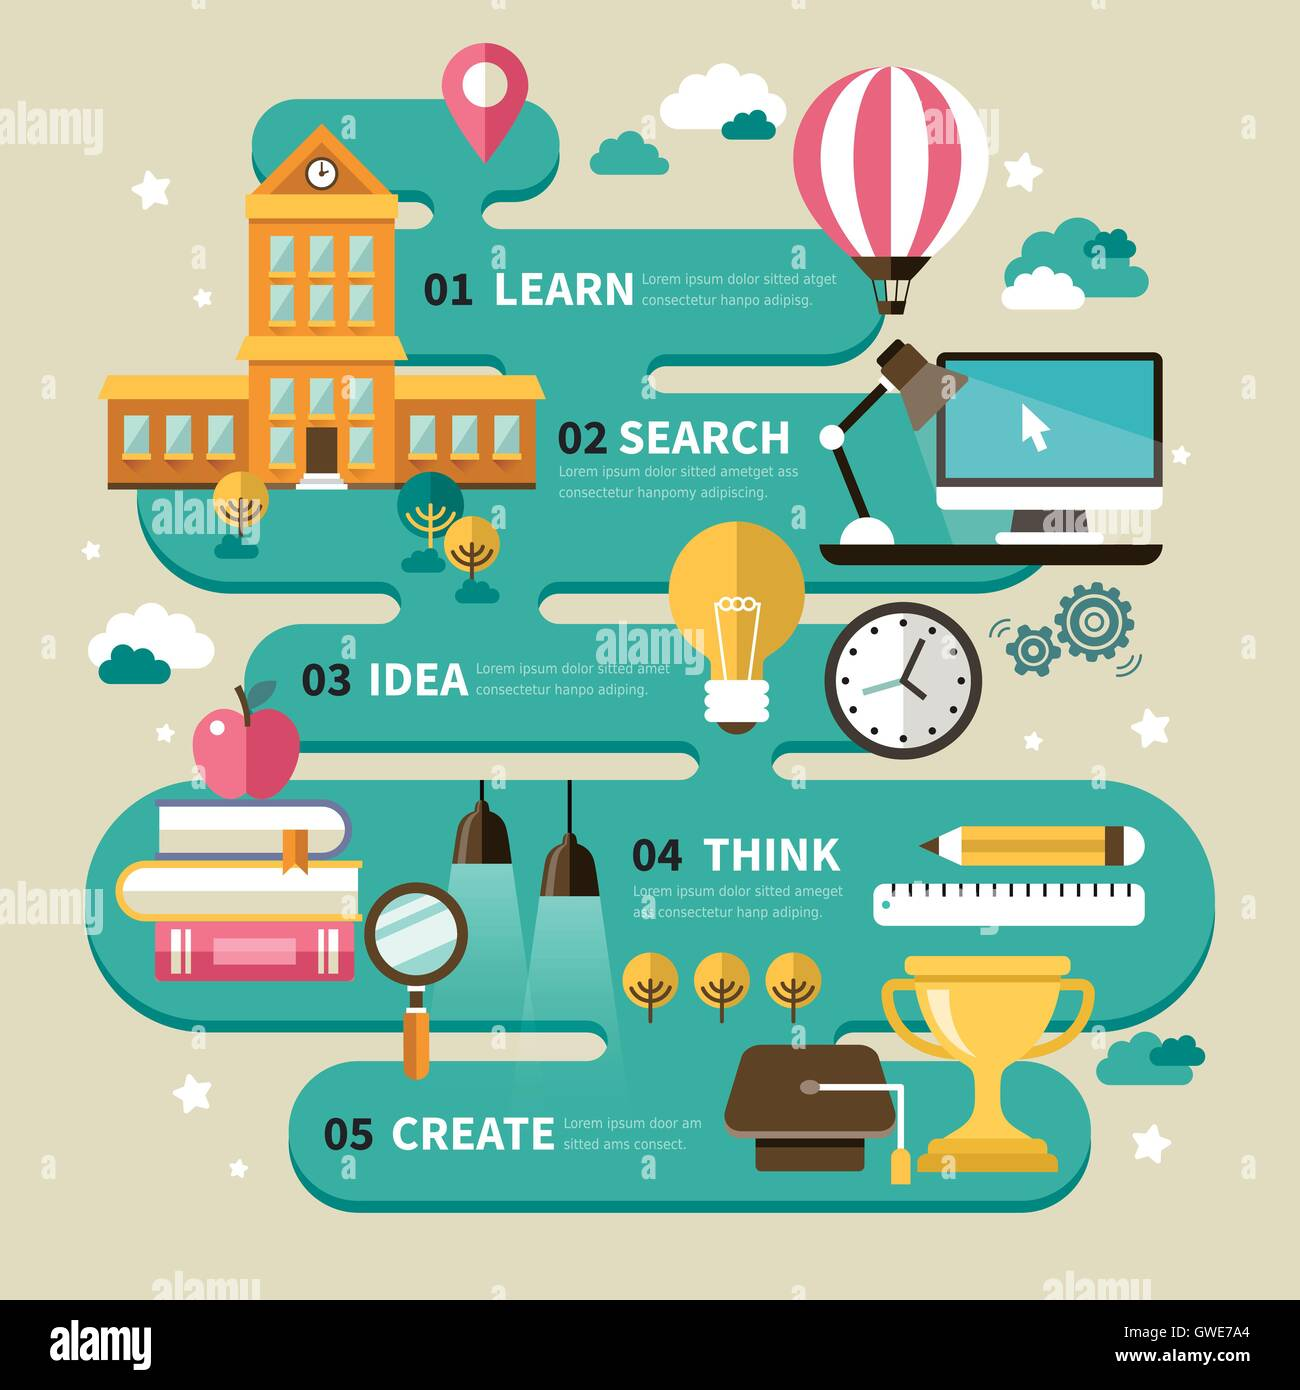 Education Infographic Design Lovely School And Stationery